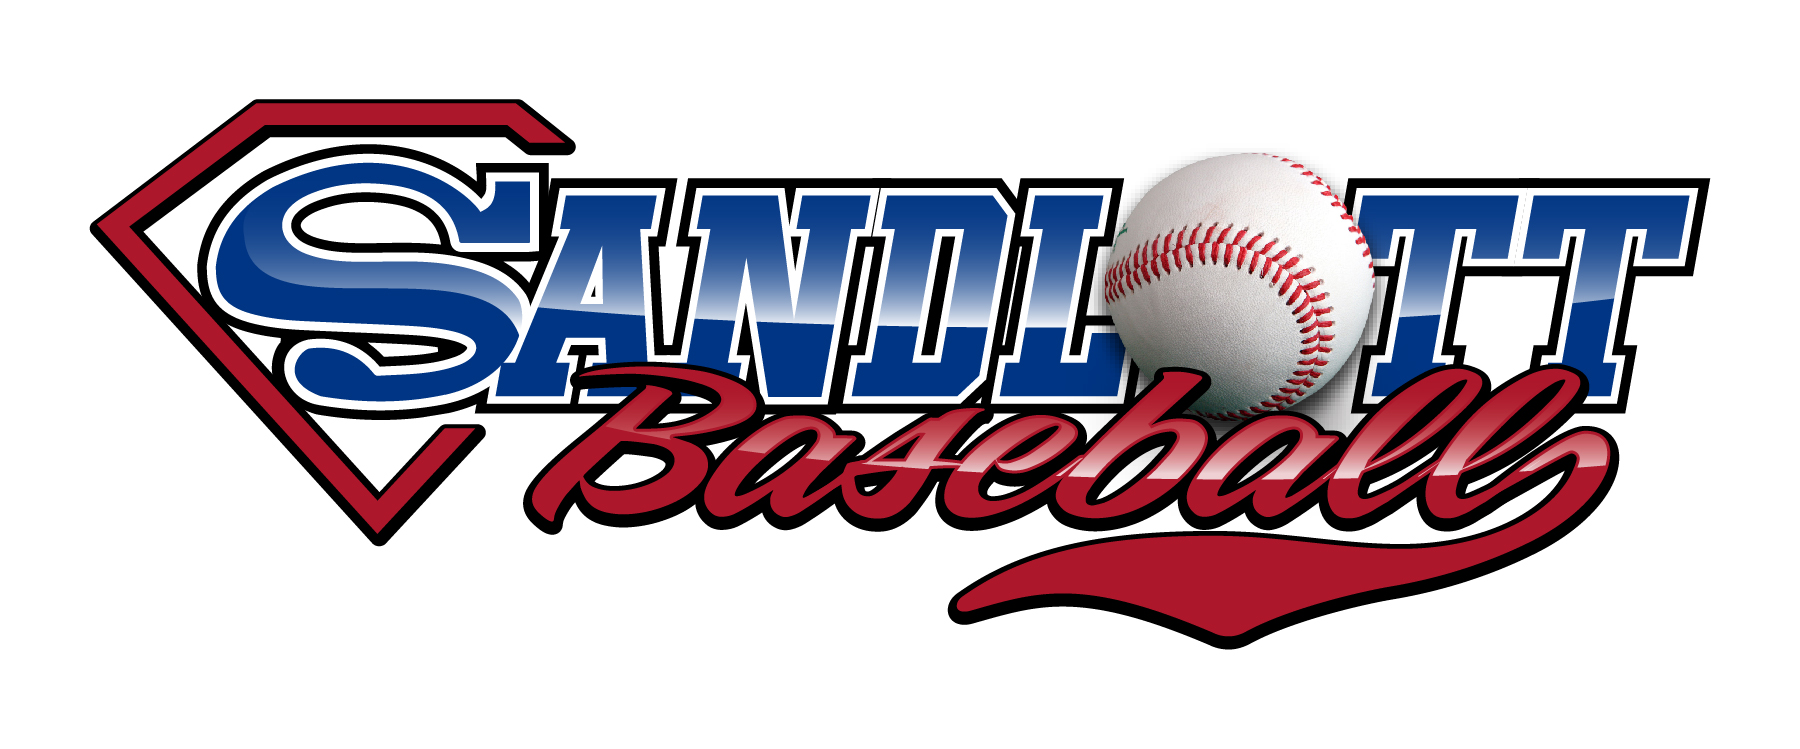 adult baseball leauges in tennessee